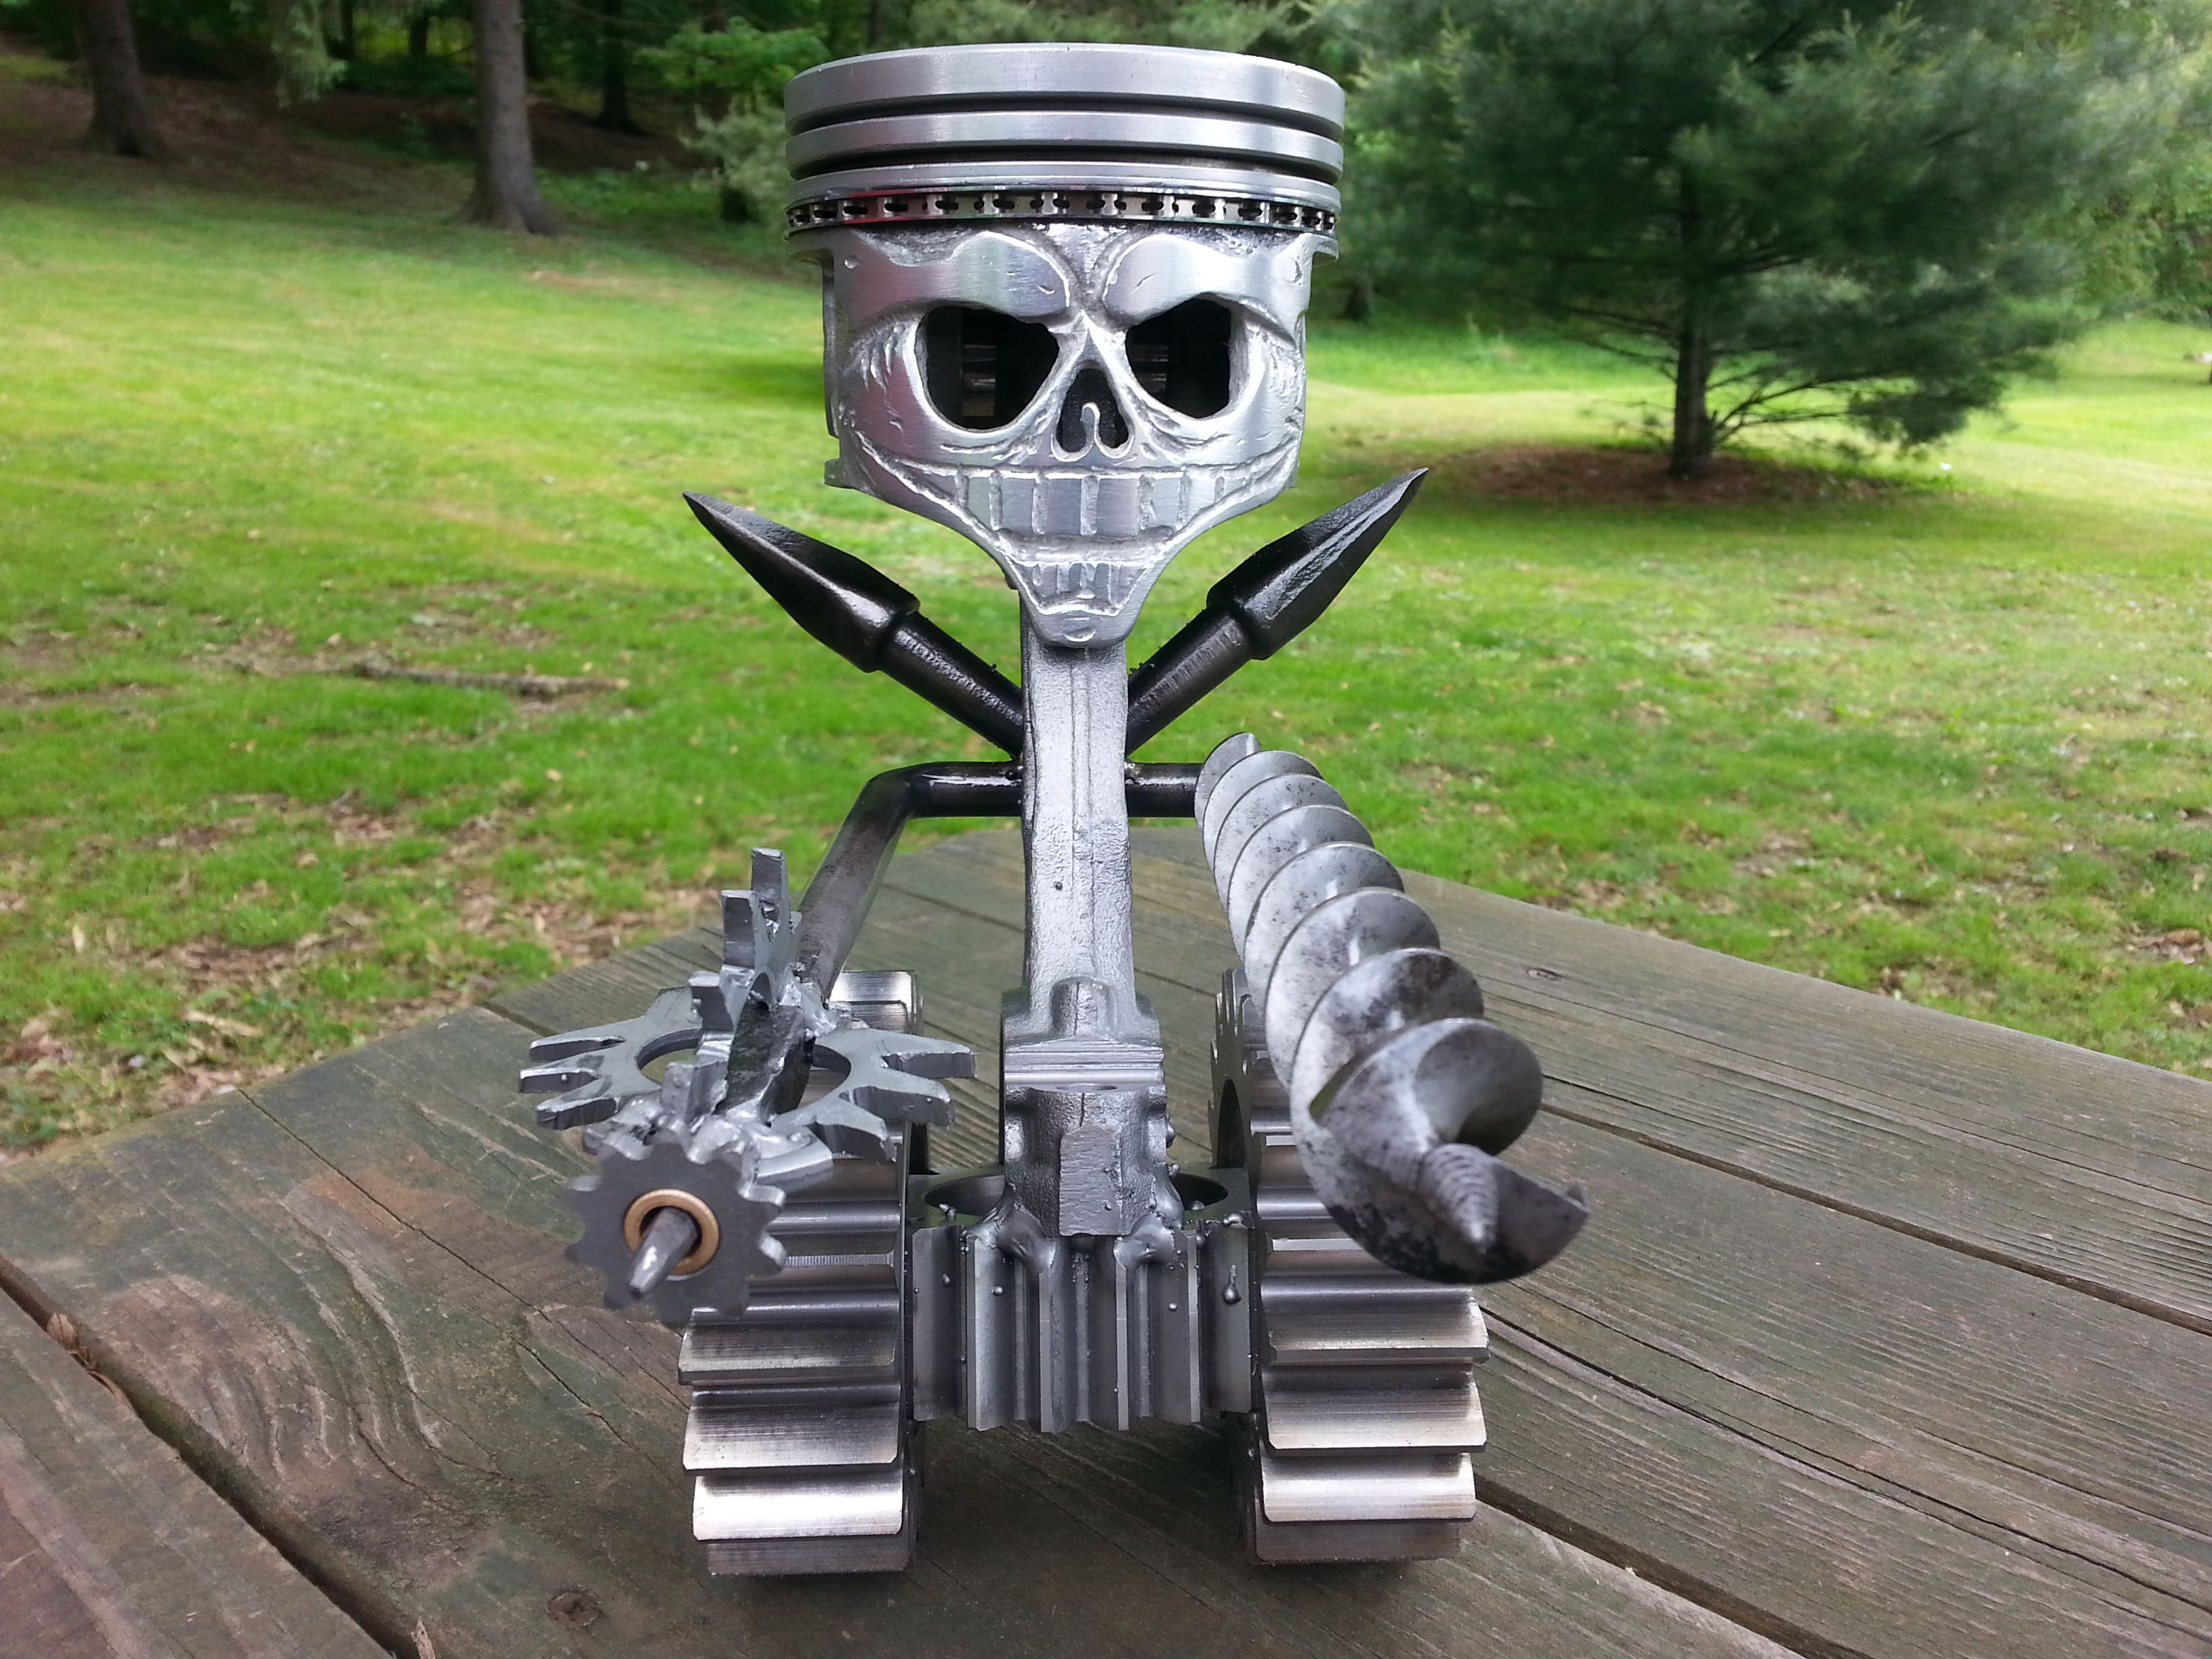 Piston / scrap metal art. | Metal working | Pinterest ...